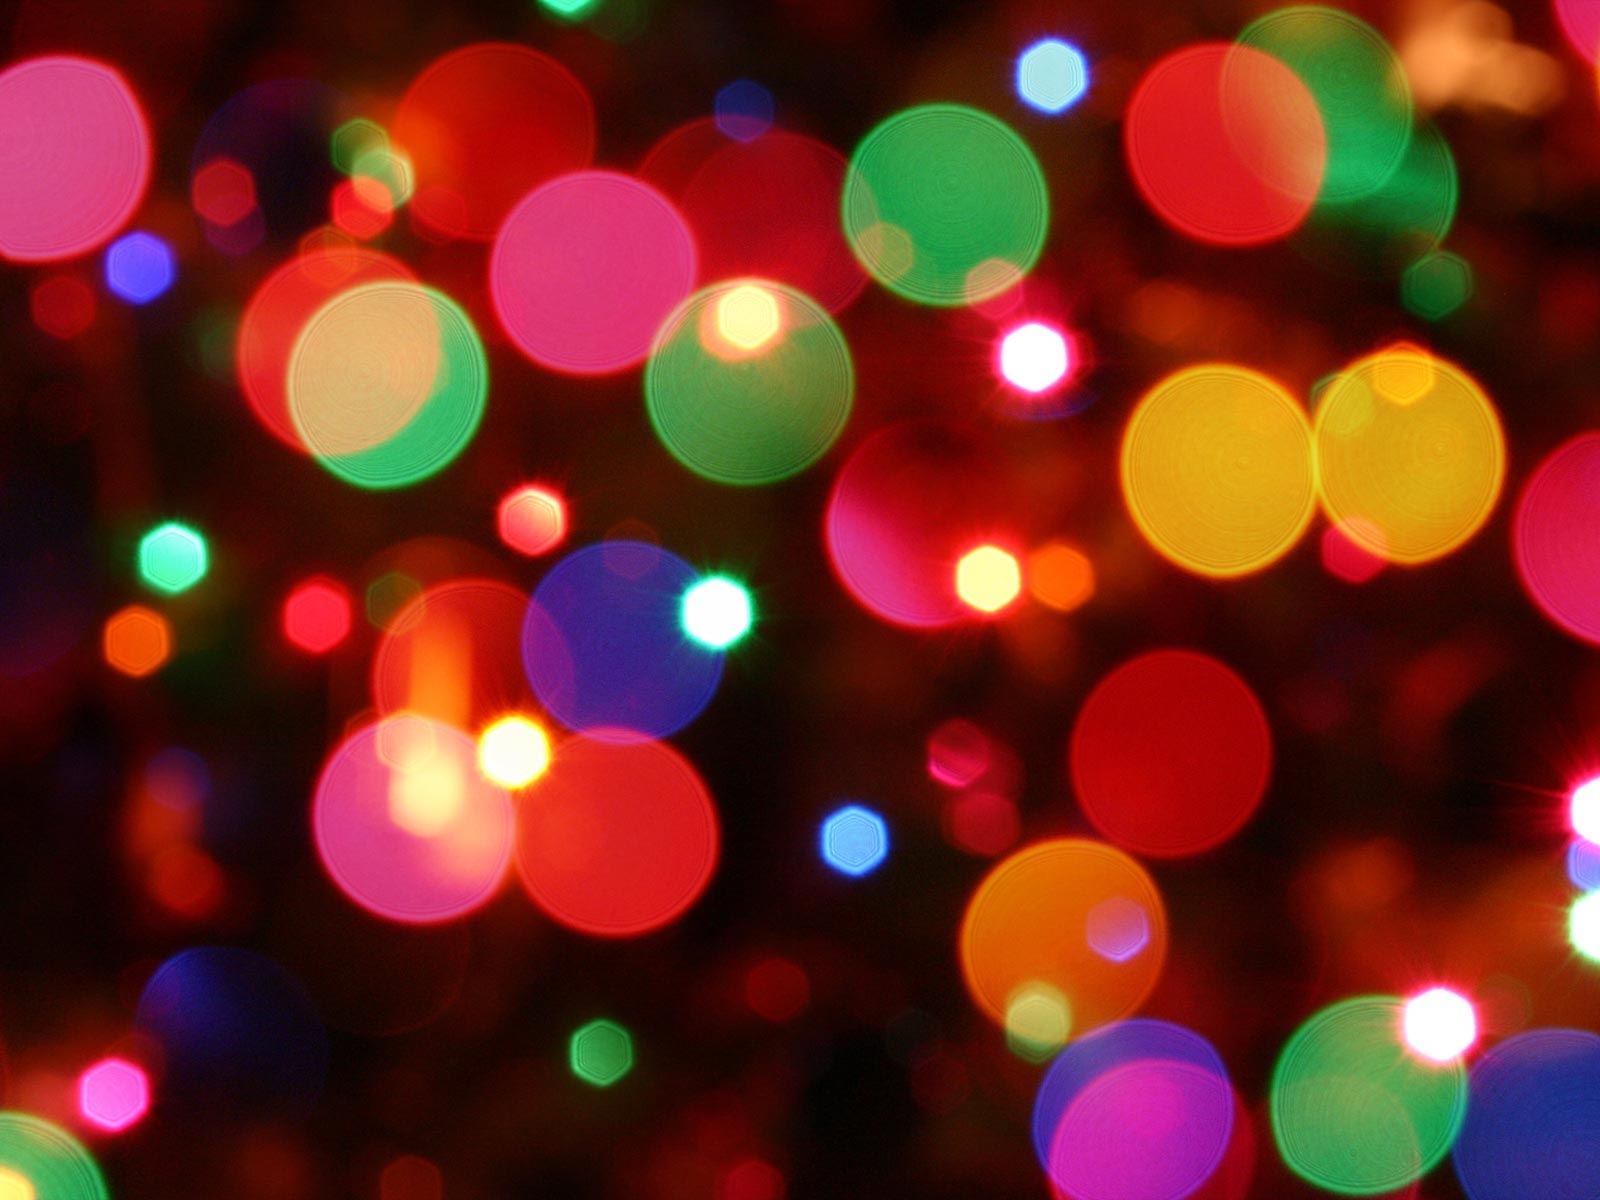 Holiday Backgrounds | HD Backgrounds Pic